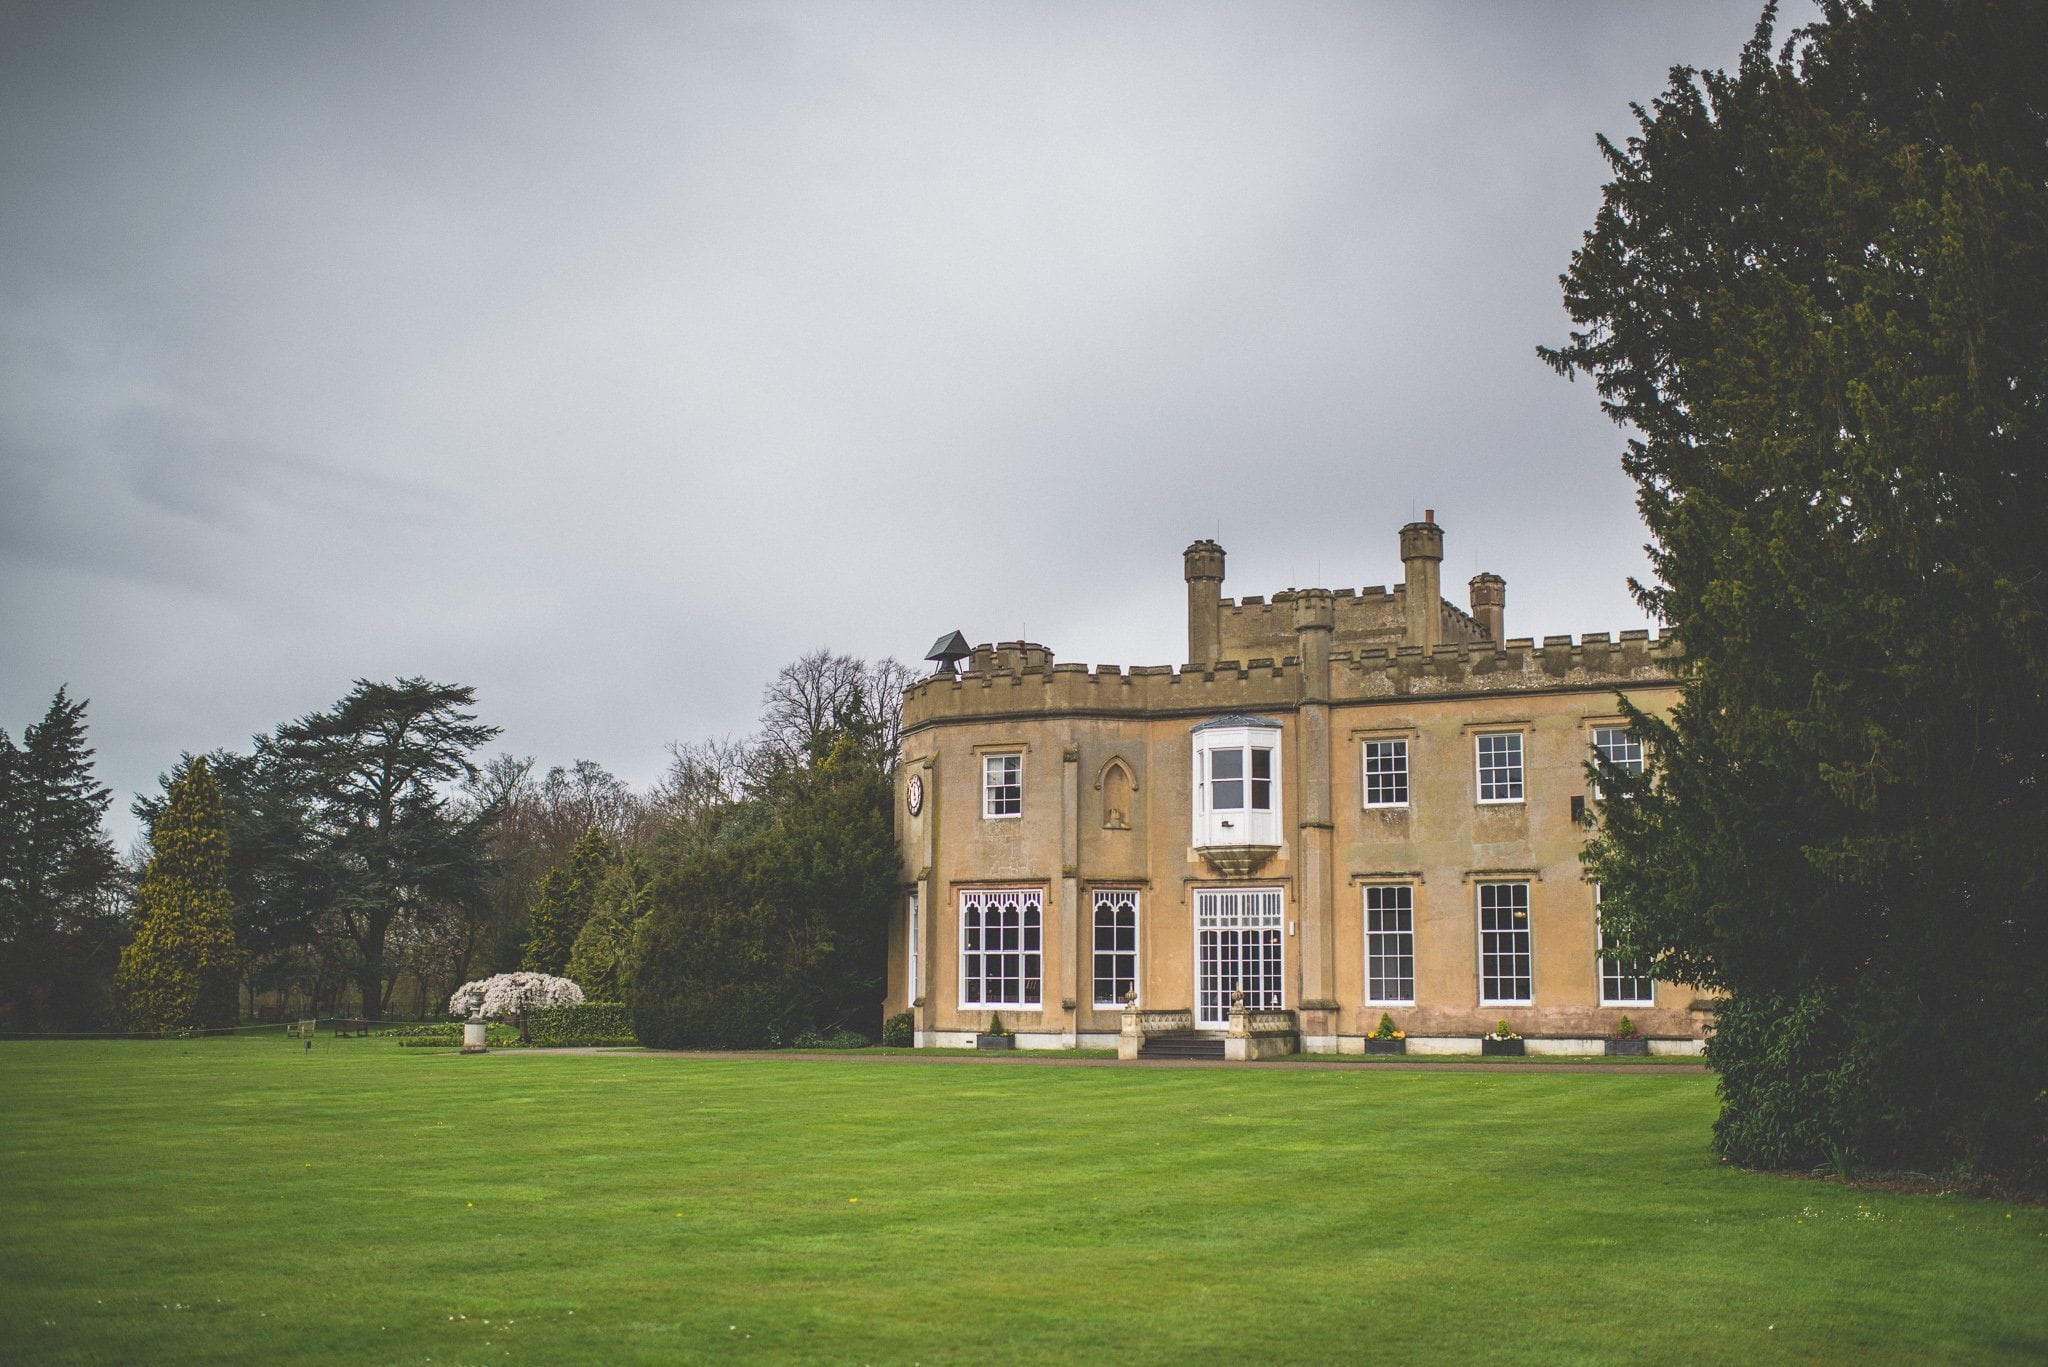 An exterior shot of Nonsuch Mansion with grey clouds gathering